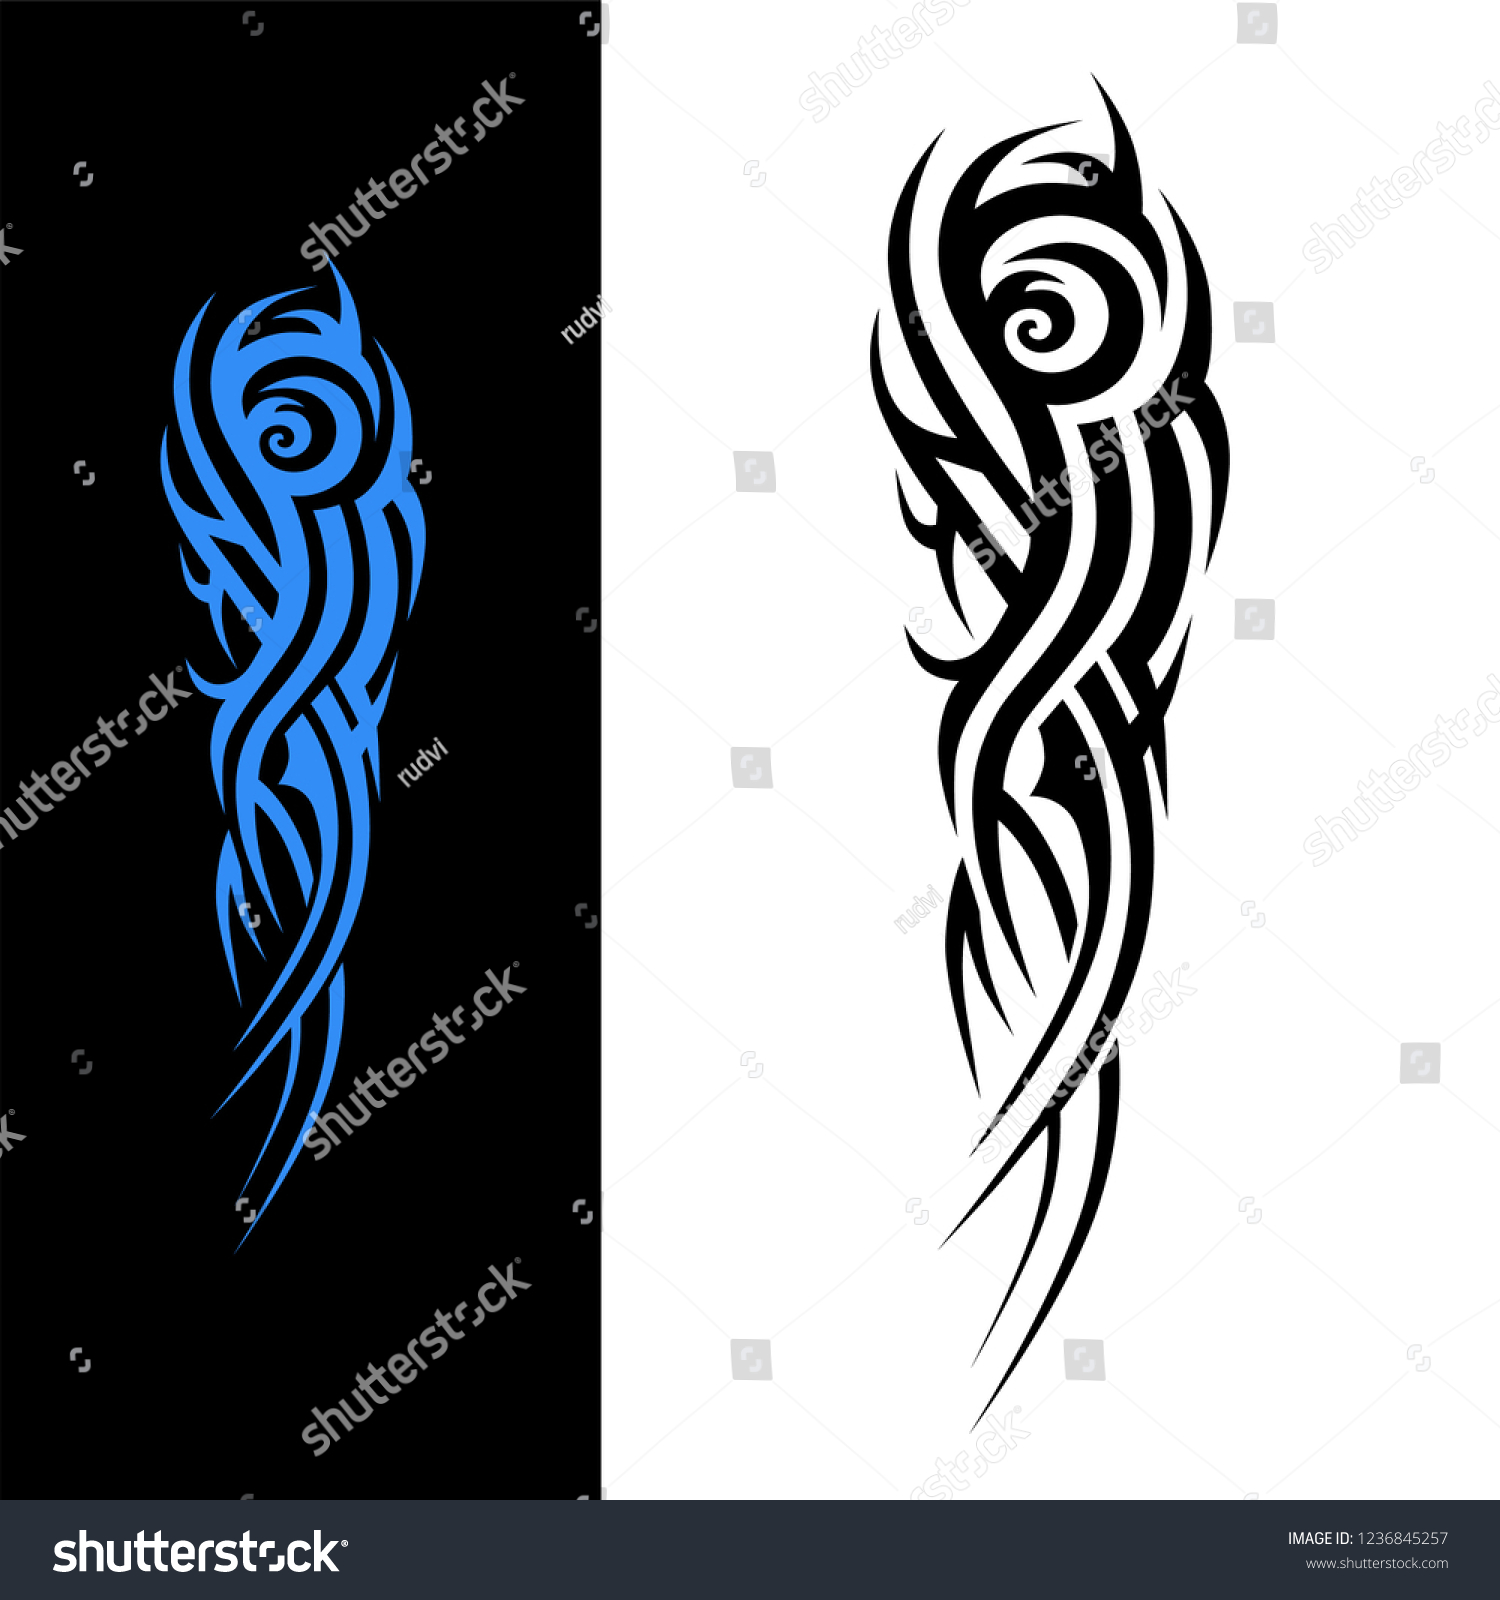 Tattoo Tribal Sleeve Design Vector Art Stock Vector Royalty Free 1236845257,Name Tattoos Designs On Arm For Men